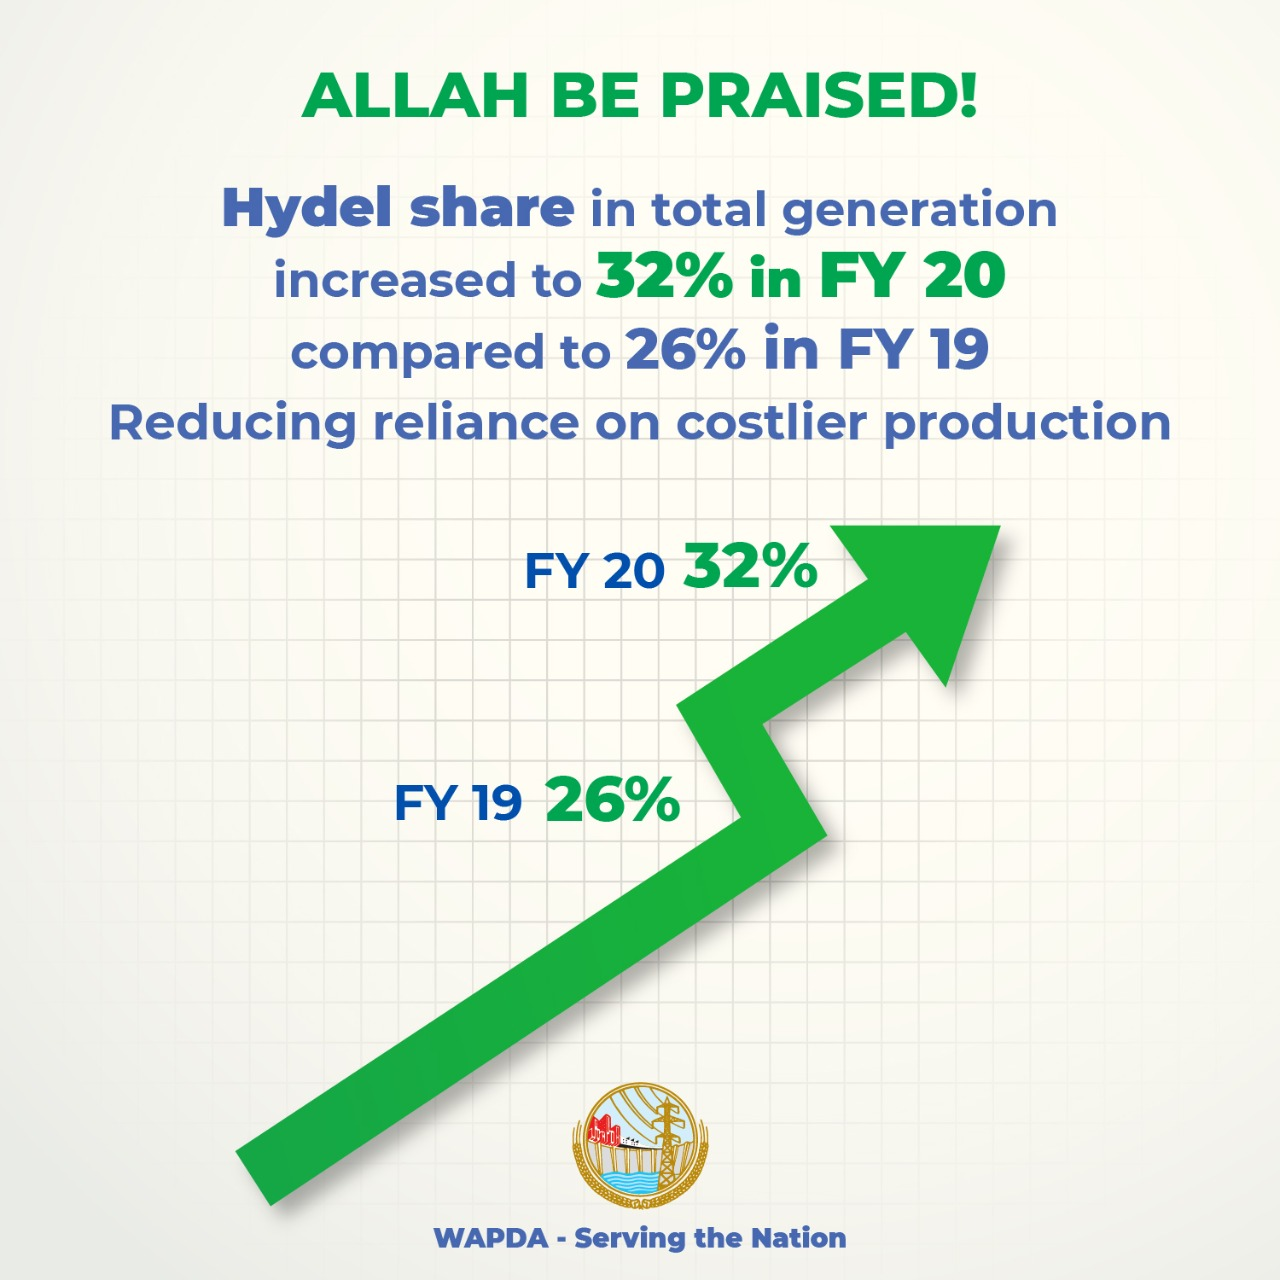 Hydel Share increased 2020